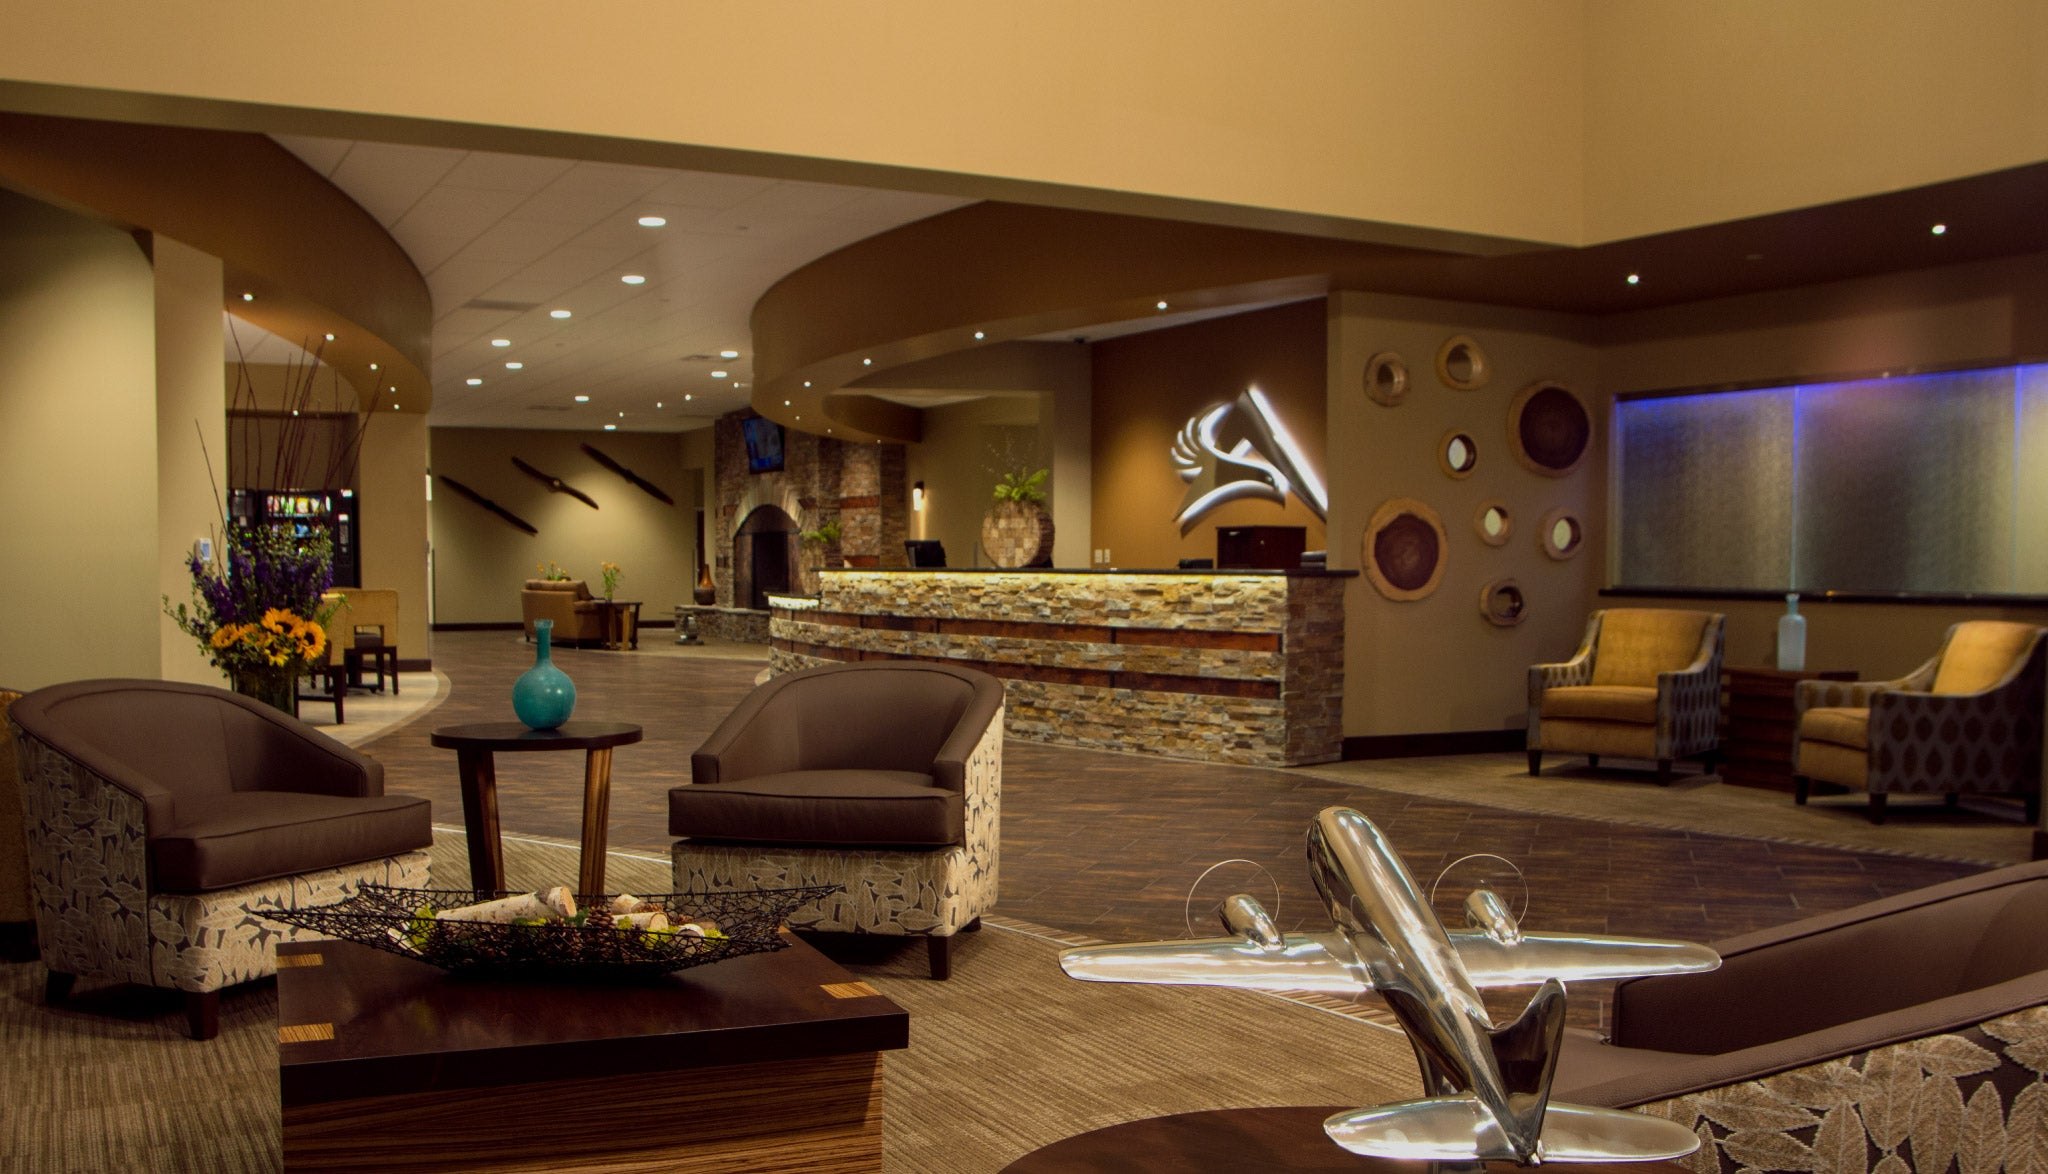 Interior design for FBO lobby in Reno